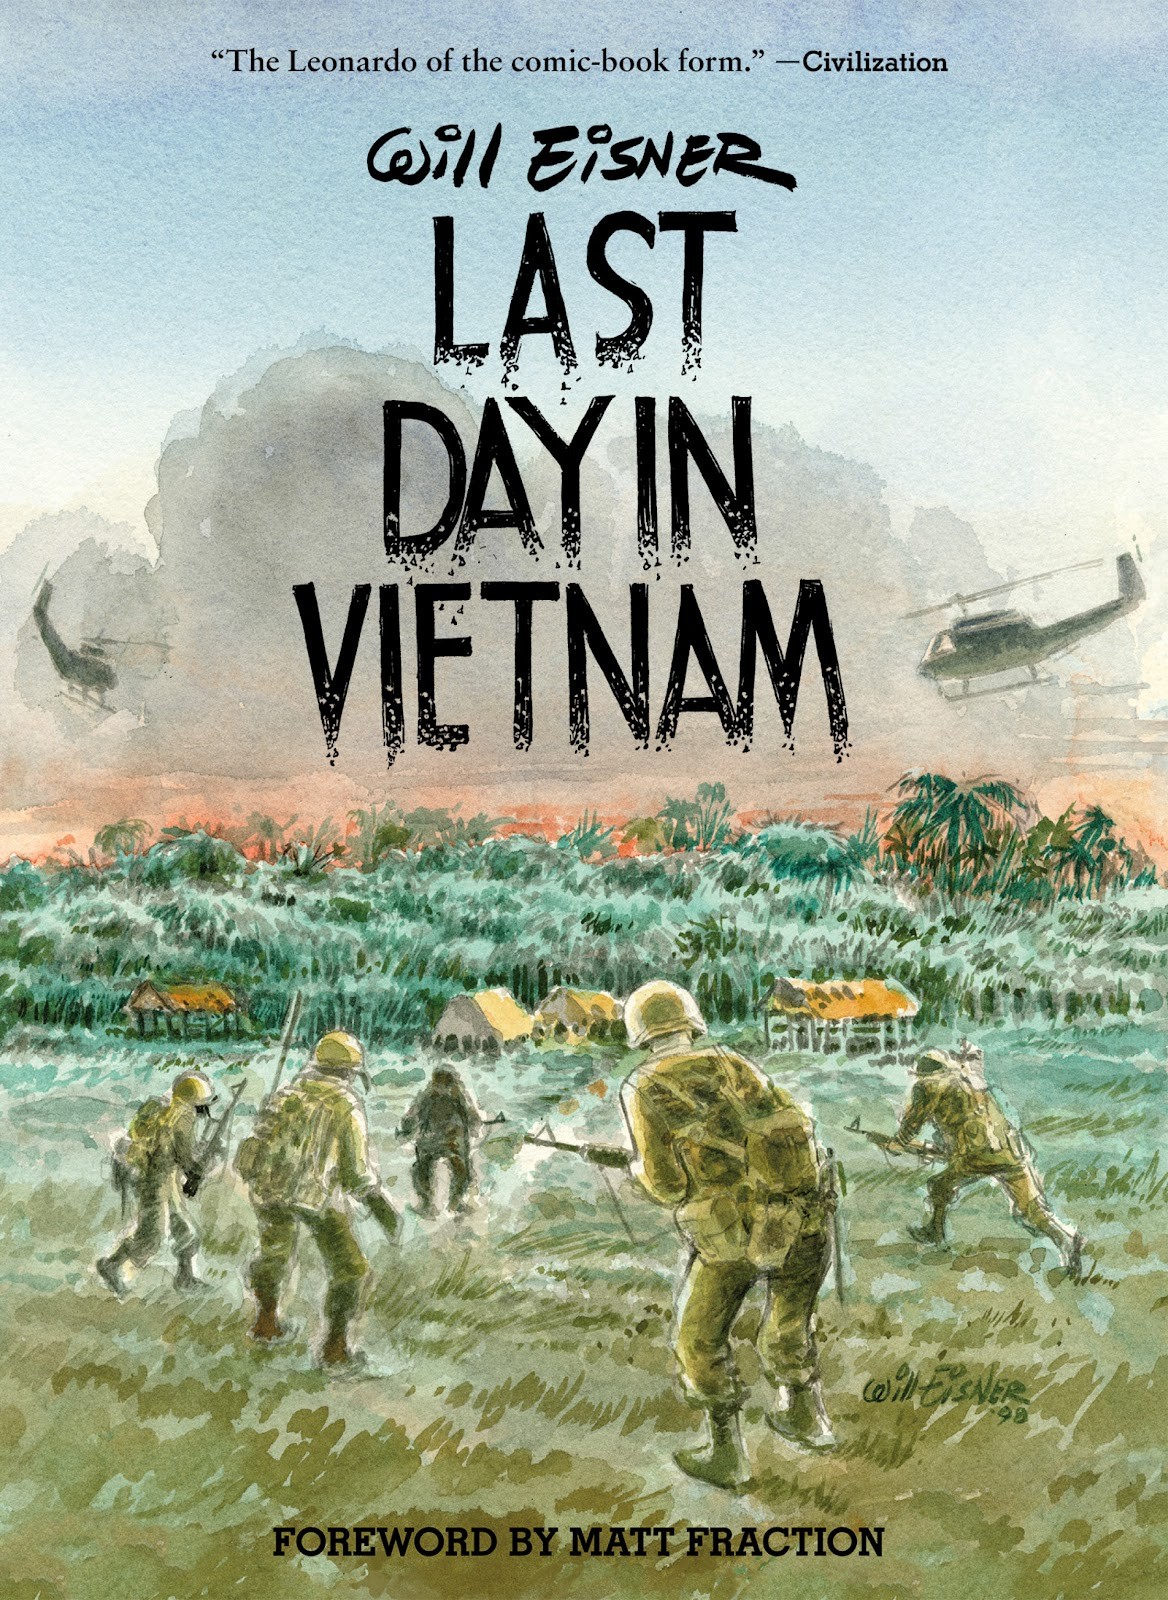 Read online Last Day in Vietnam comic -  Issue # TPB - 1